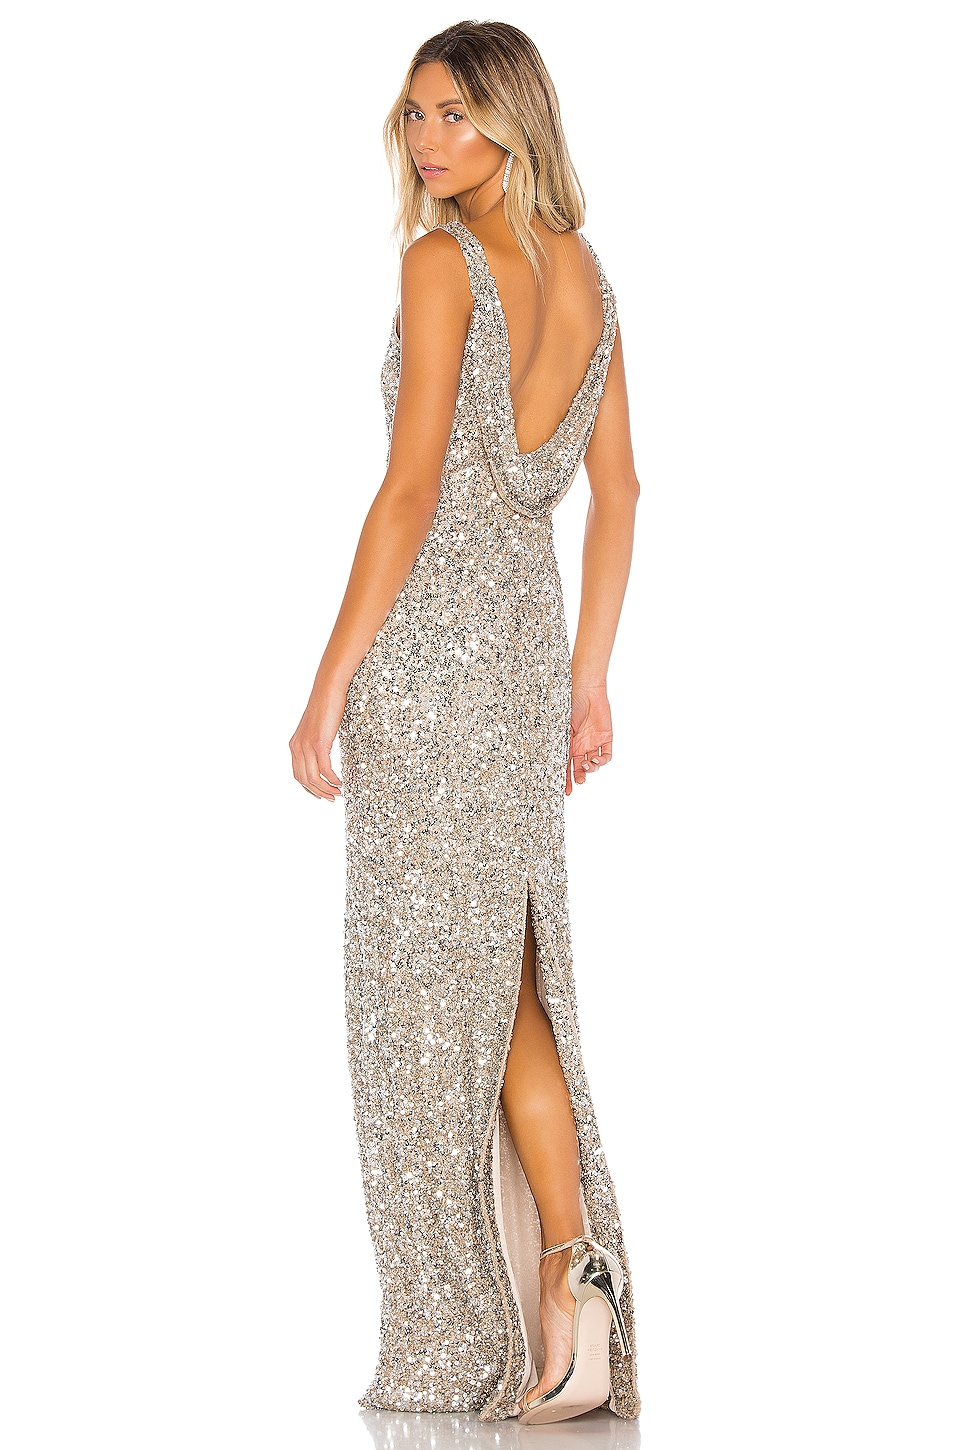 Parker Black Nicolette gown in Champagne